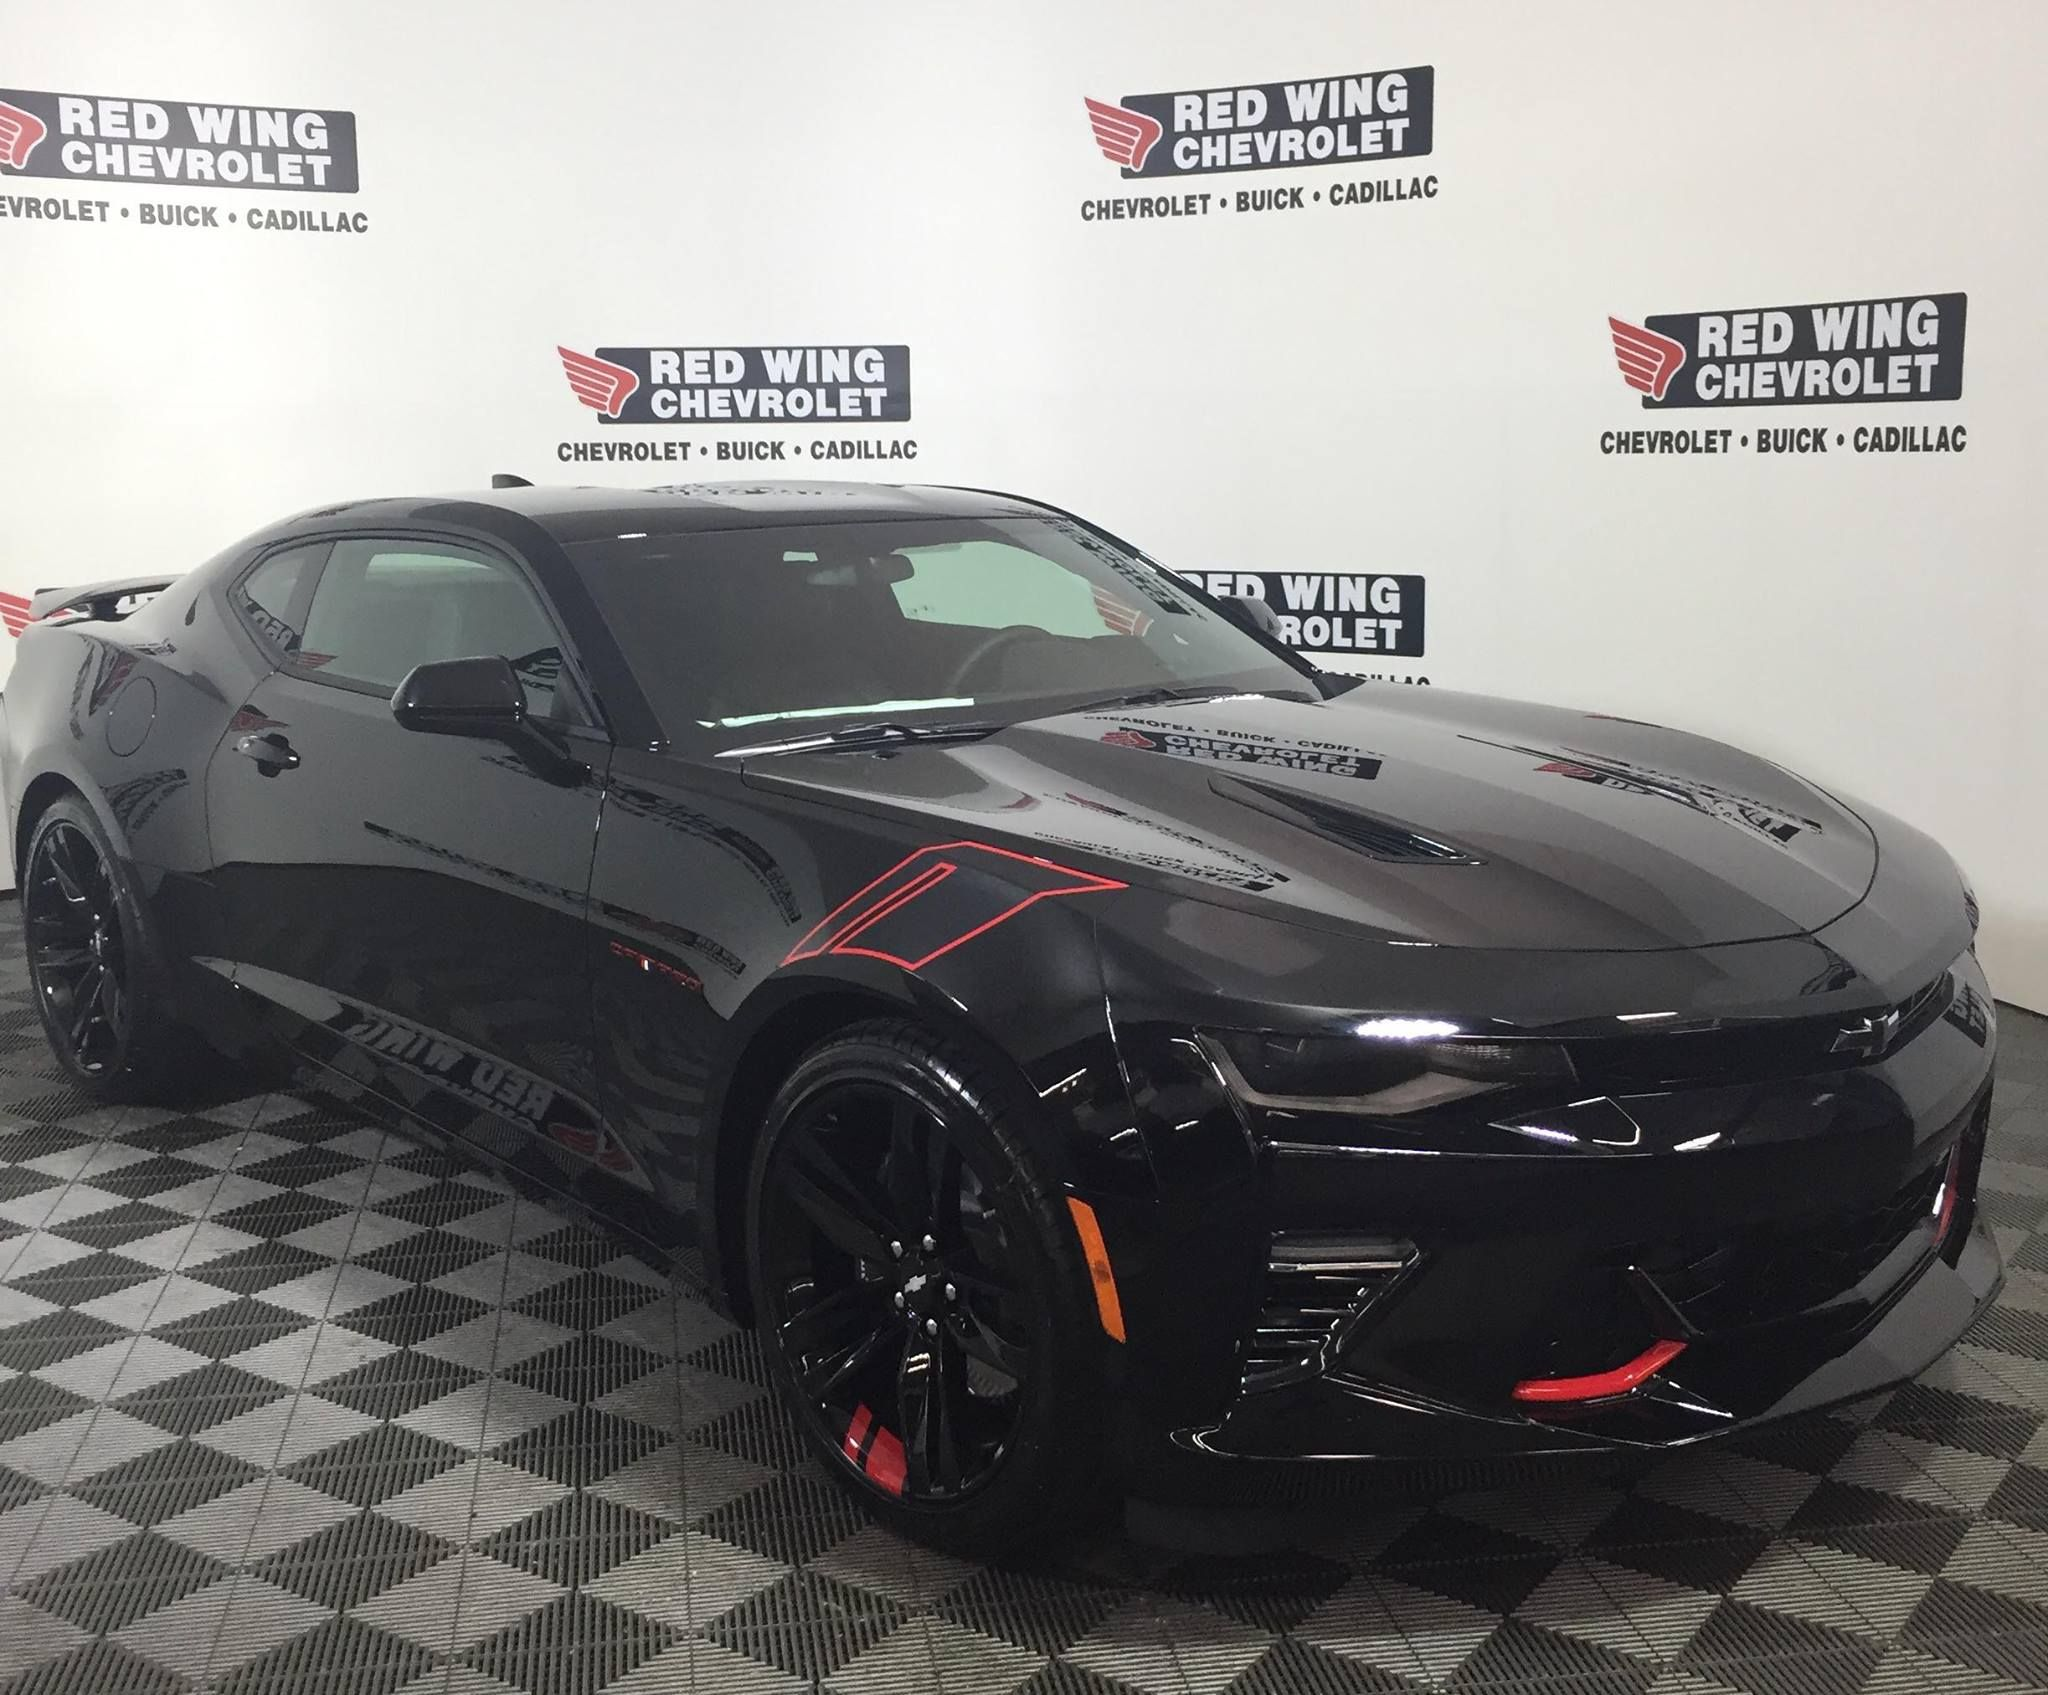 new 2017 chevy camaro 2ss redline edition redwingchevrolet red wing chevrolet buick cadillac. Black Bedroom Furniture Sets. Home Design Ideas